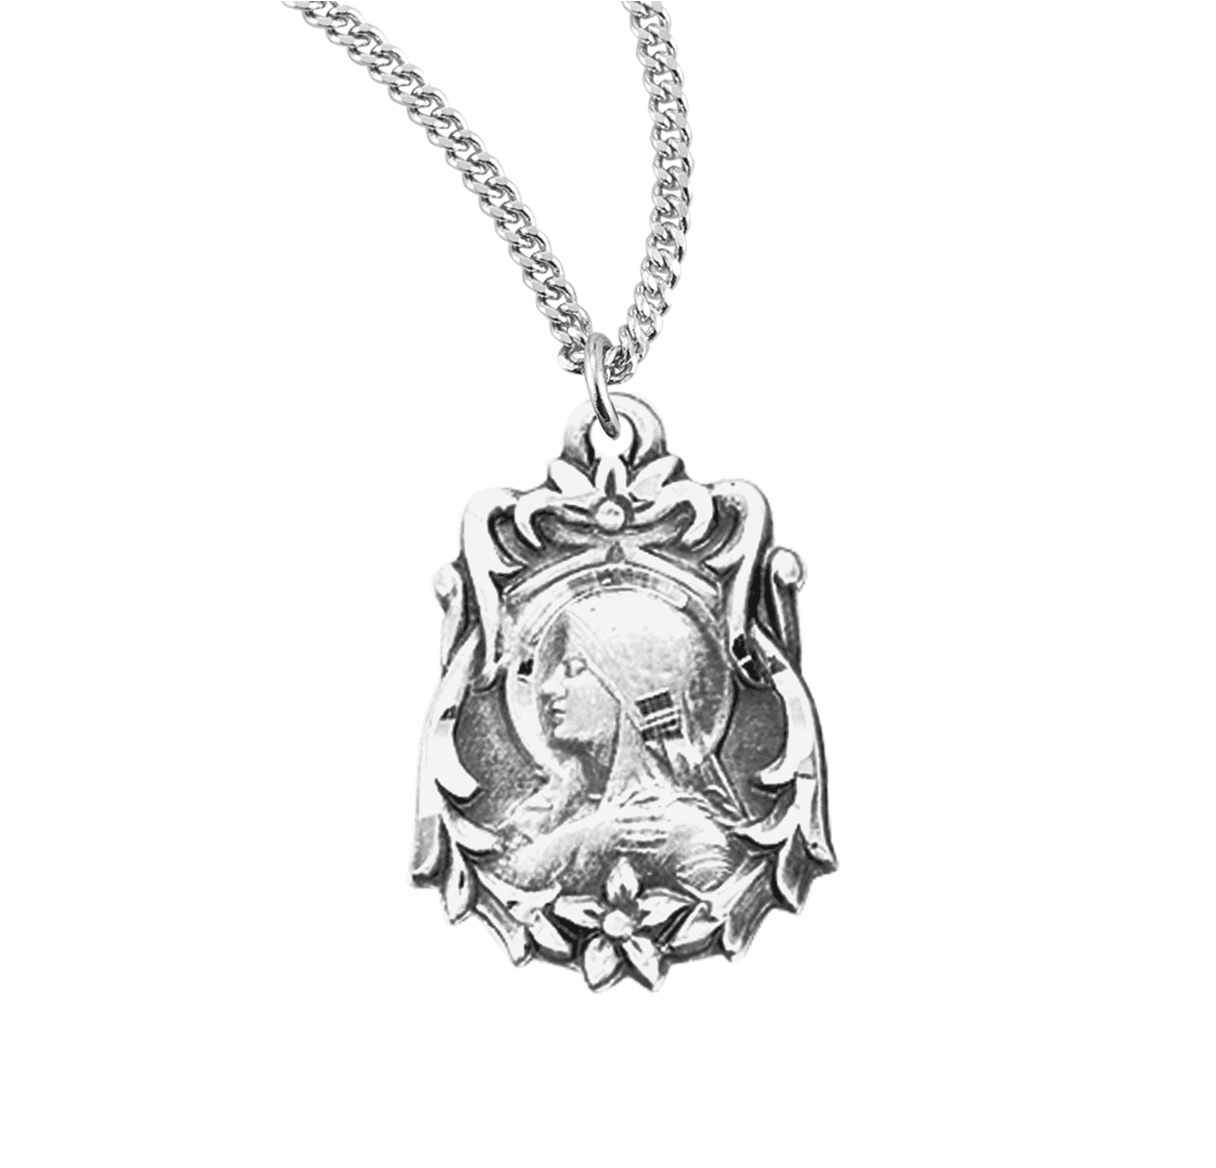 HMH Religious Sterling Silver Our Lady of Sorrow Medal Necklace